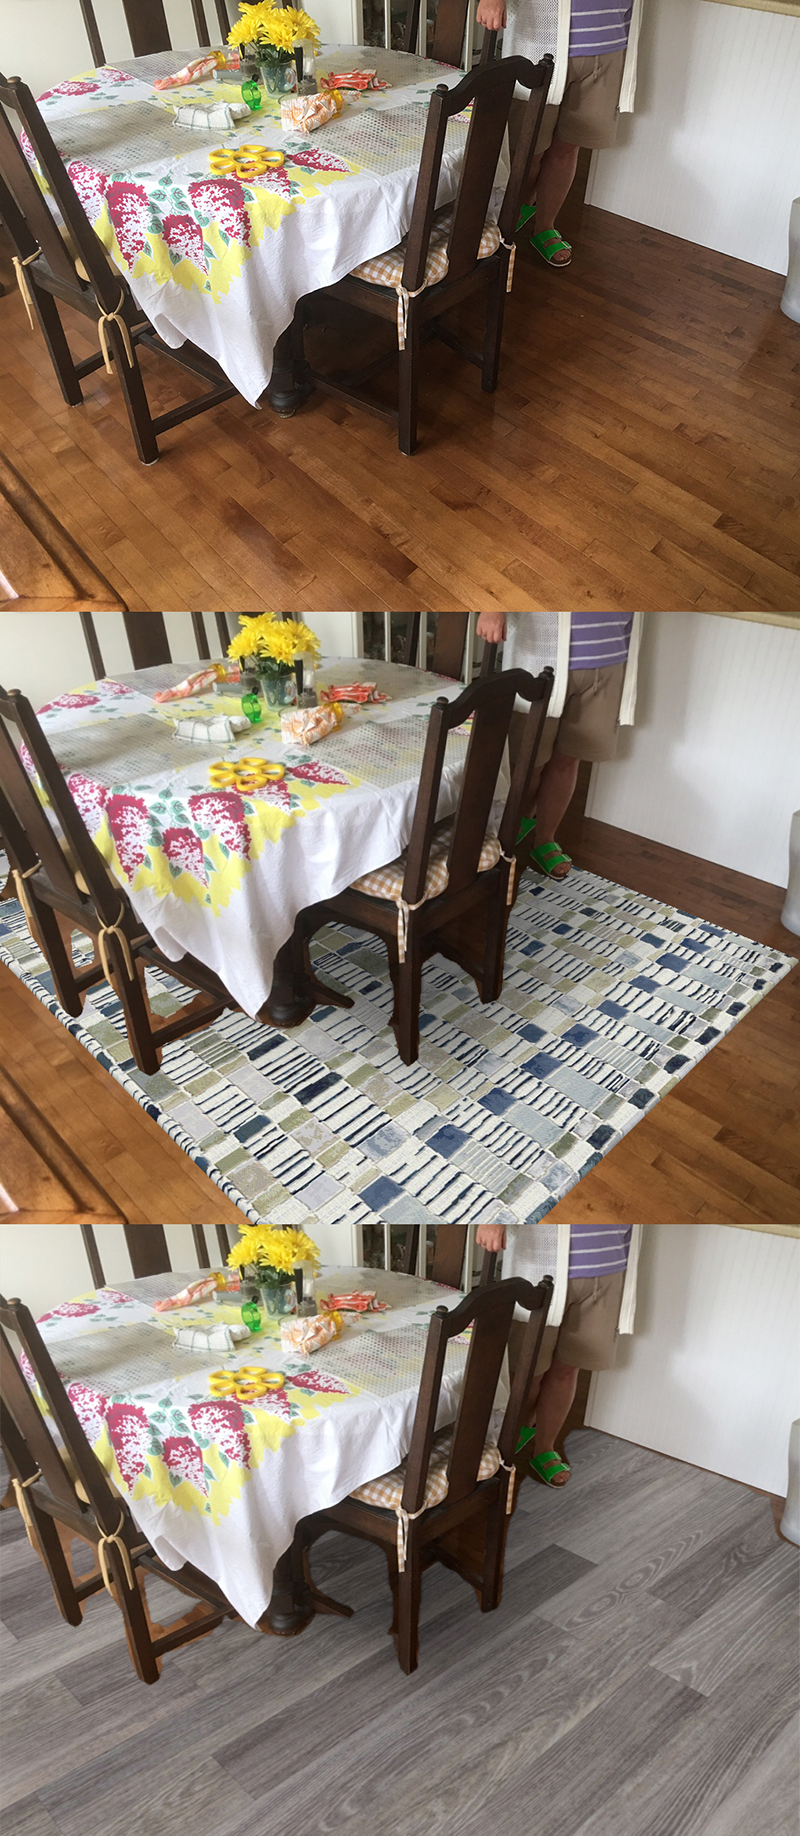 Online App Uses Room Smartphone Photo To Sell Flooring